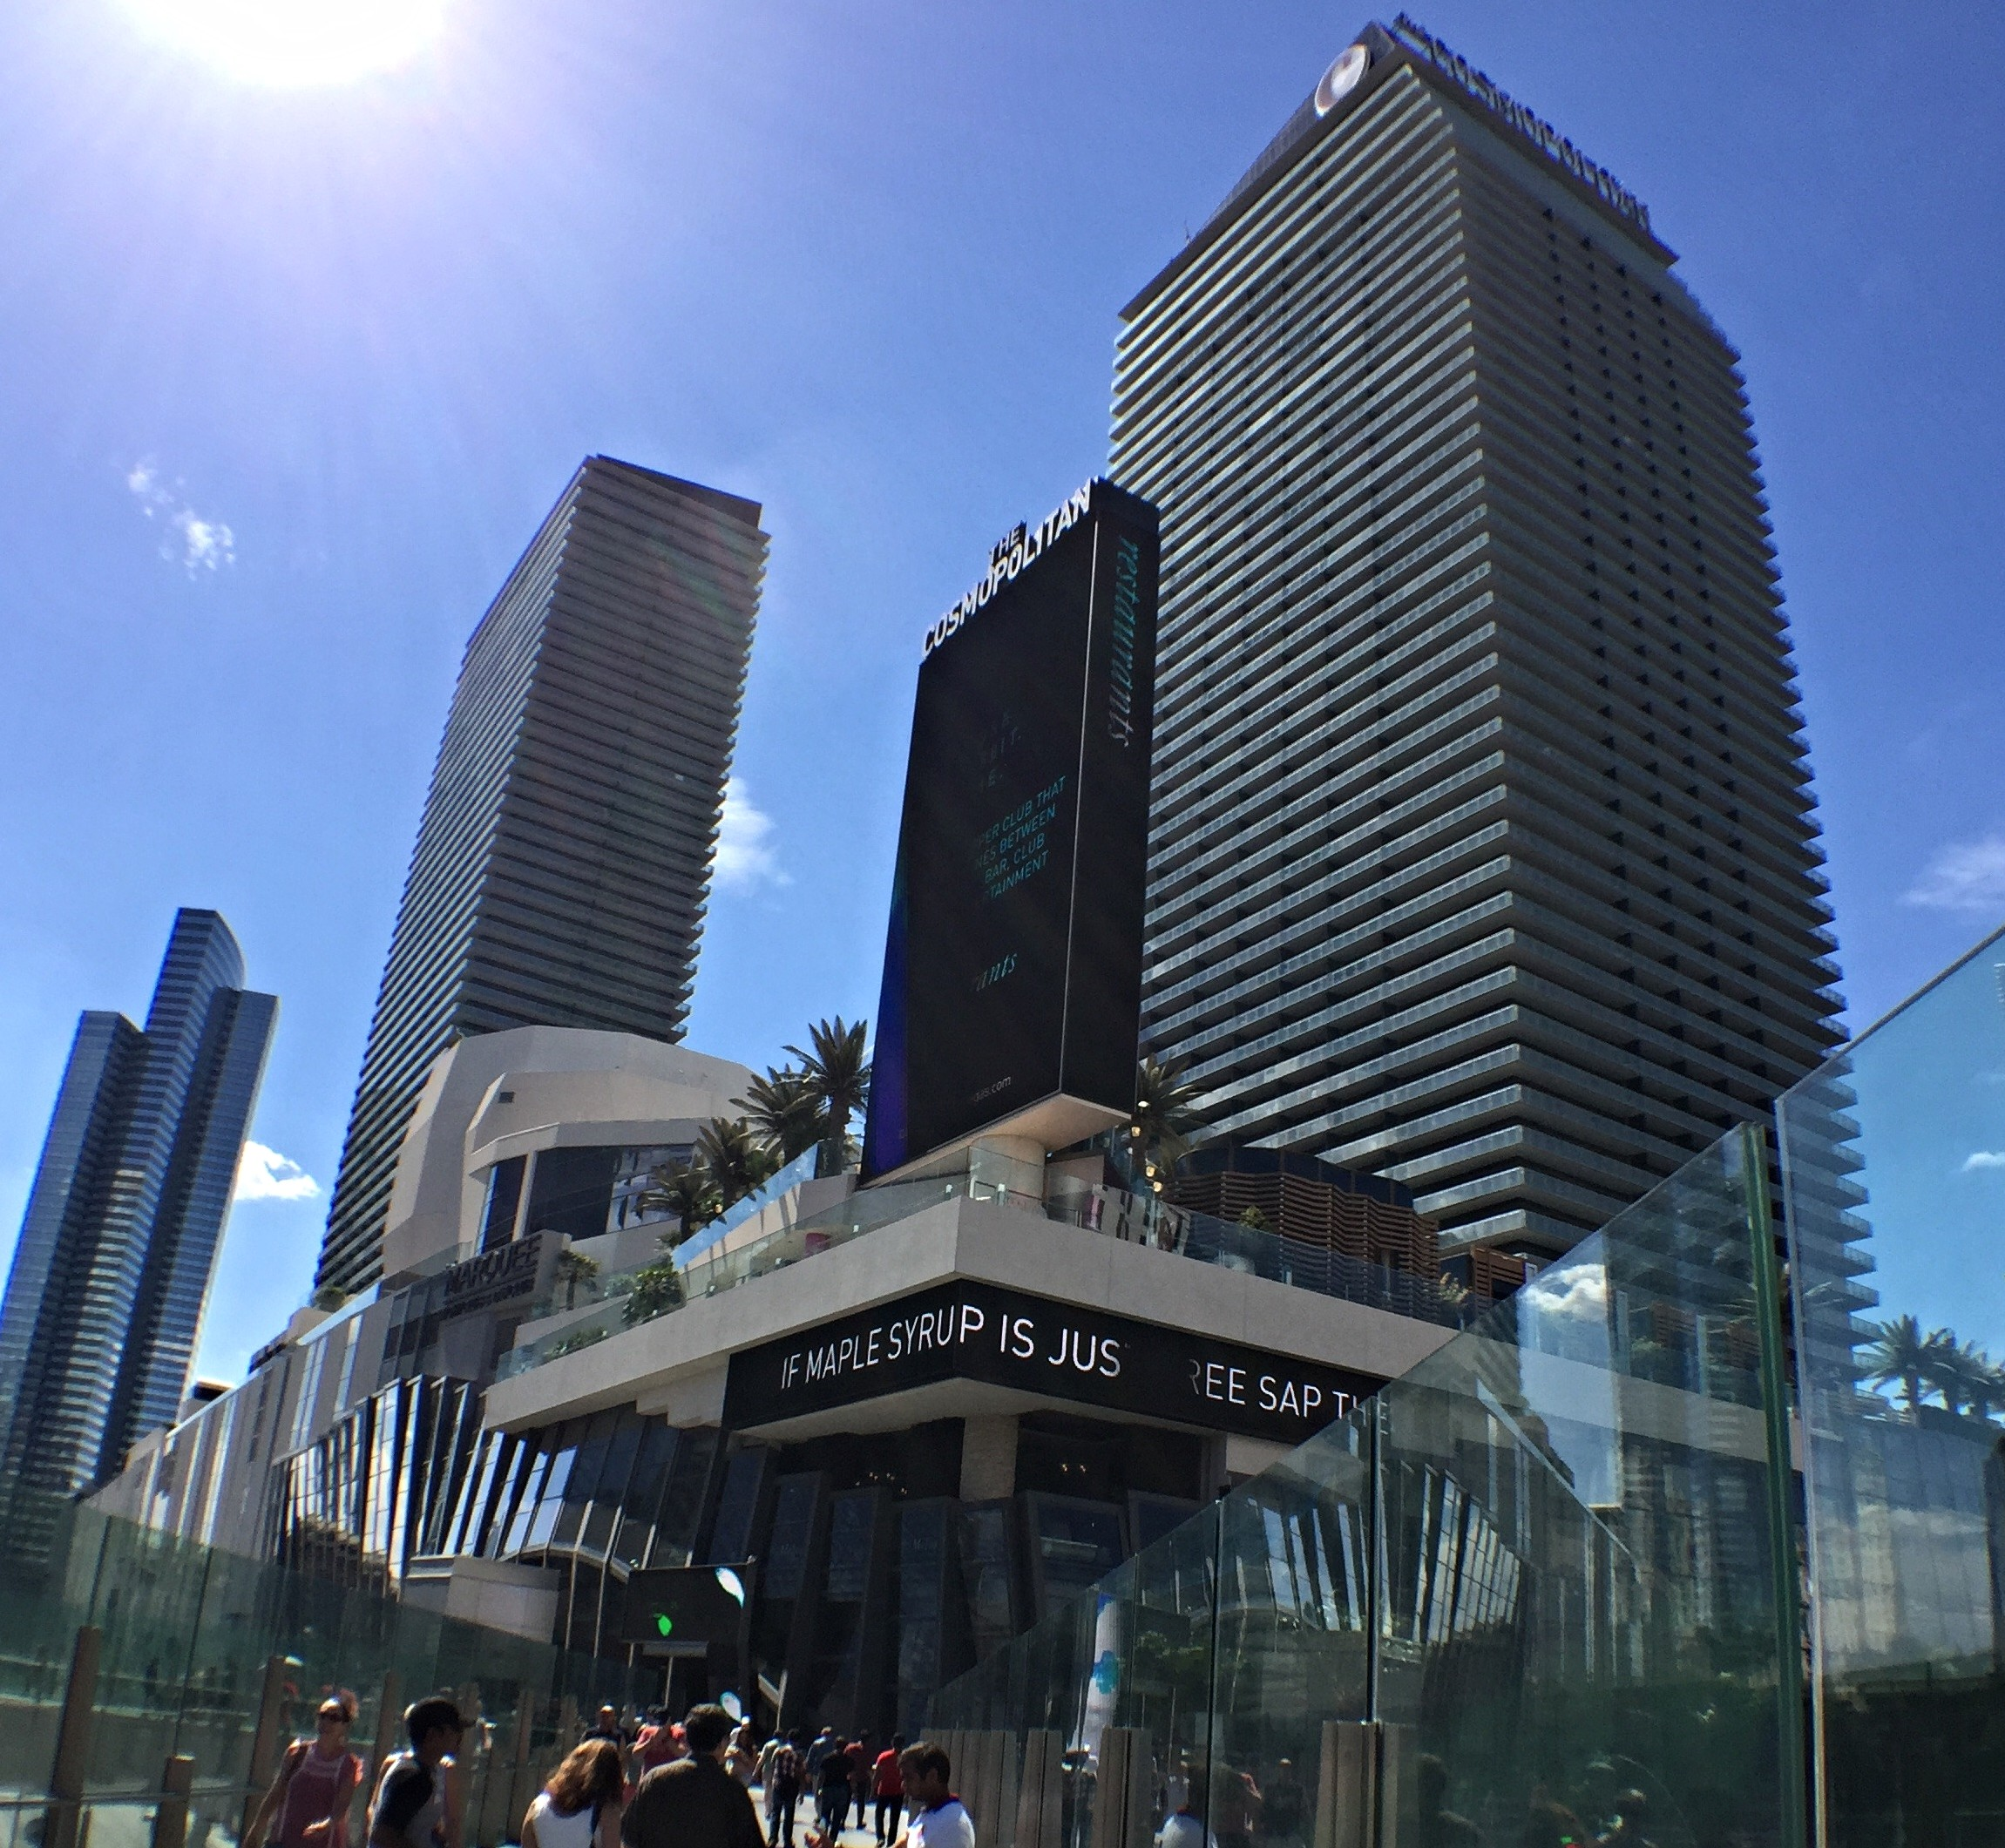 A Quick Look at The Cosmopolitan Las Vegas in Pictures